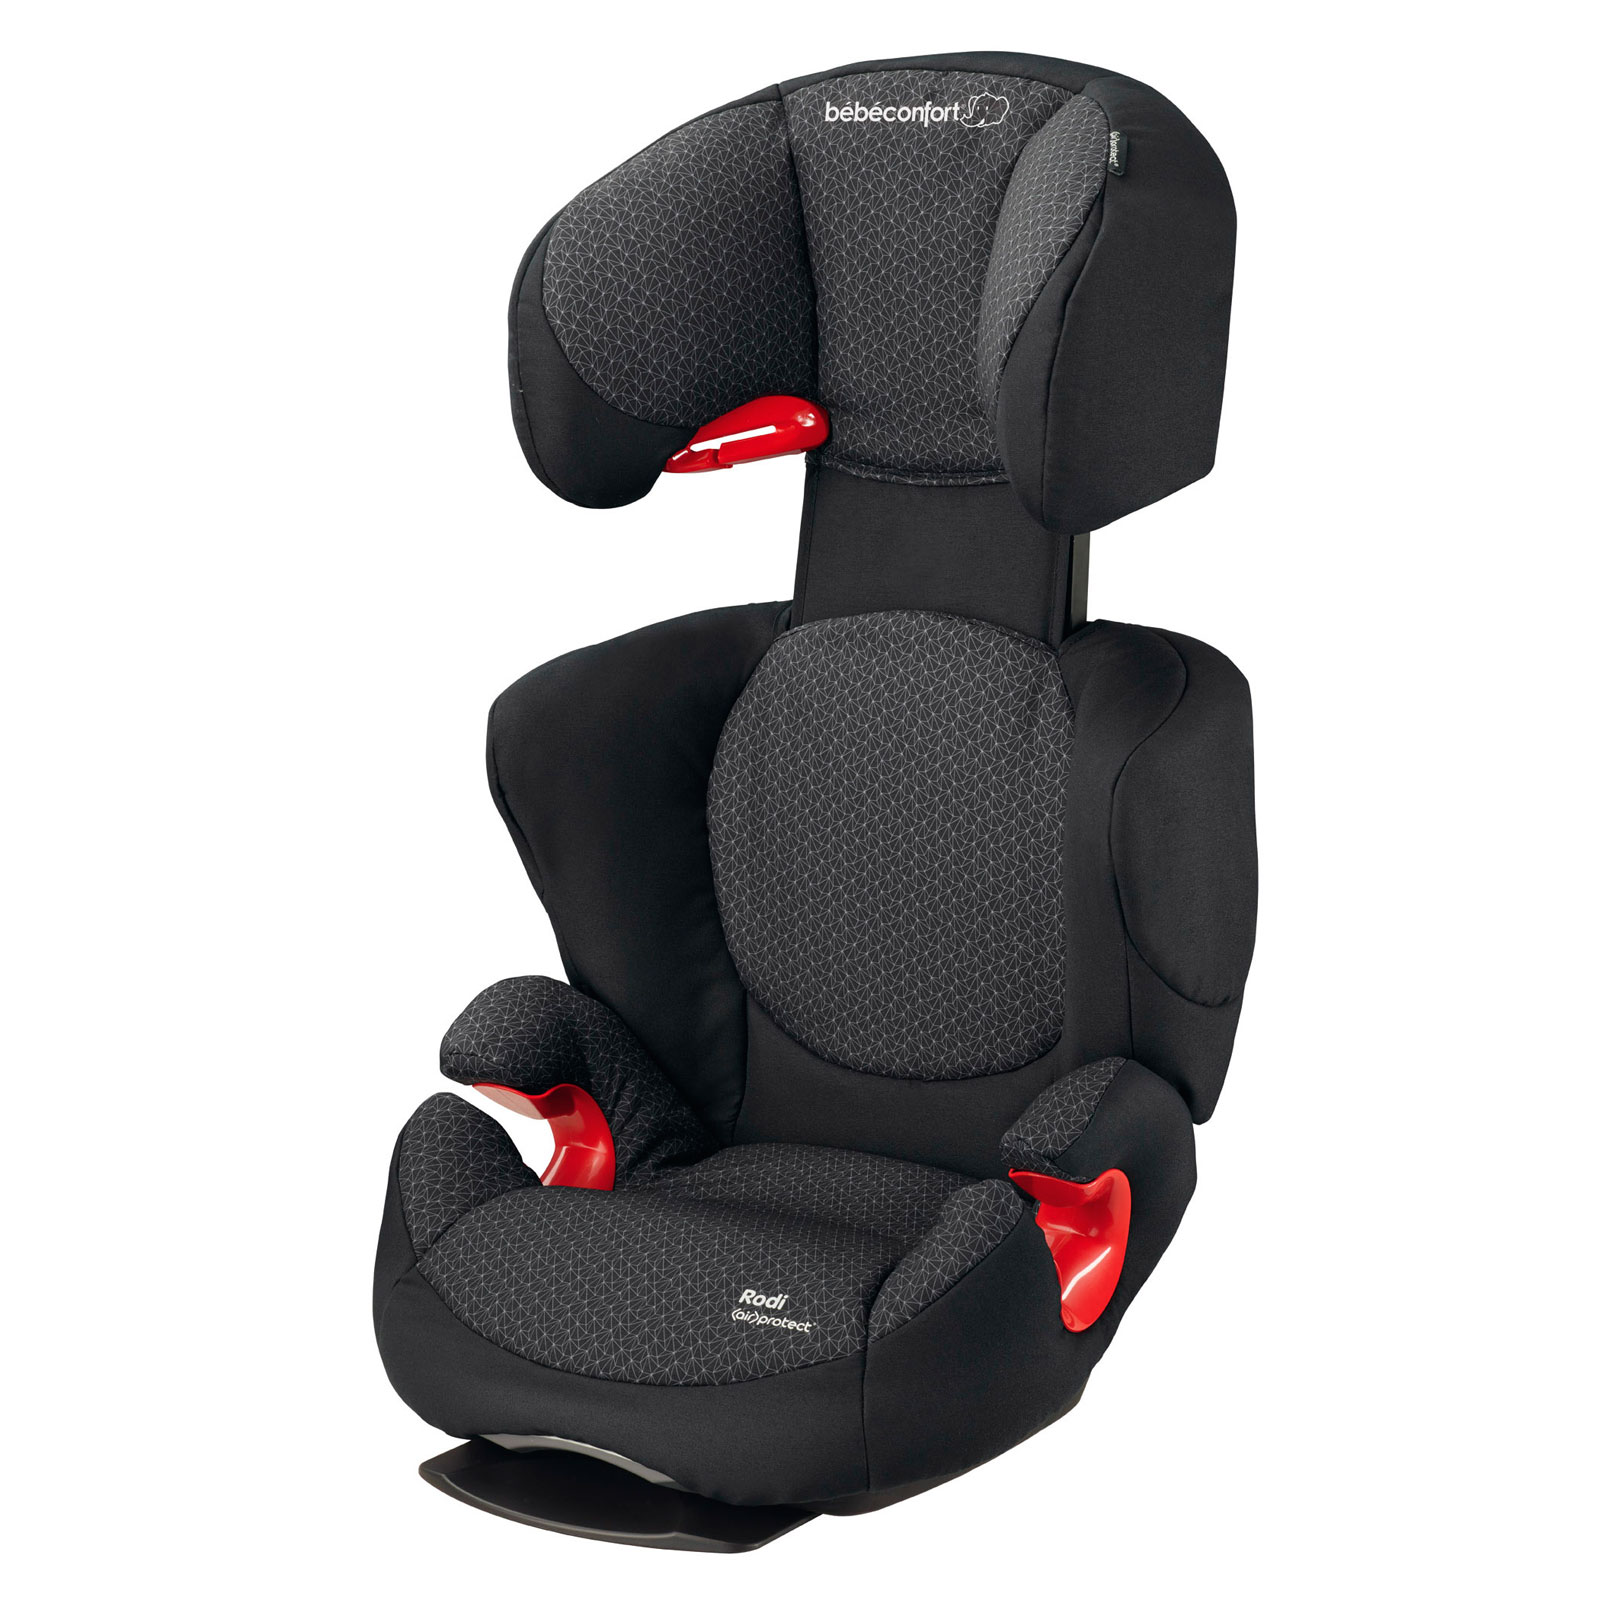 ���������� Maxi-cosi Rodi Air Protect Black Crystal